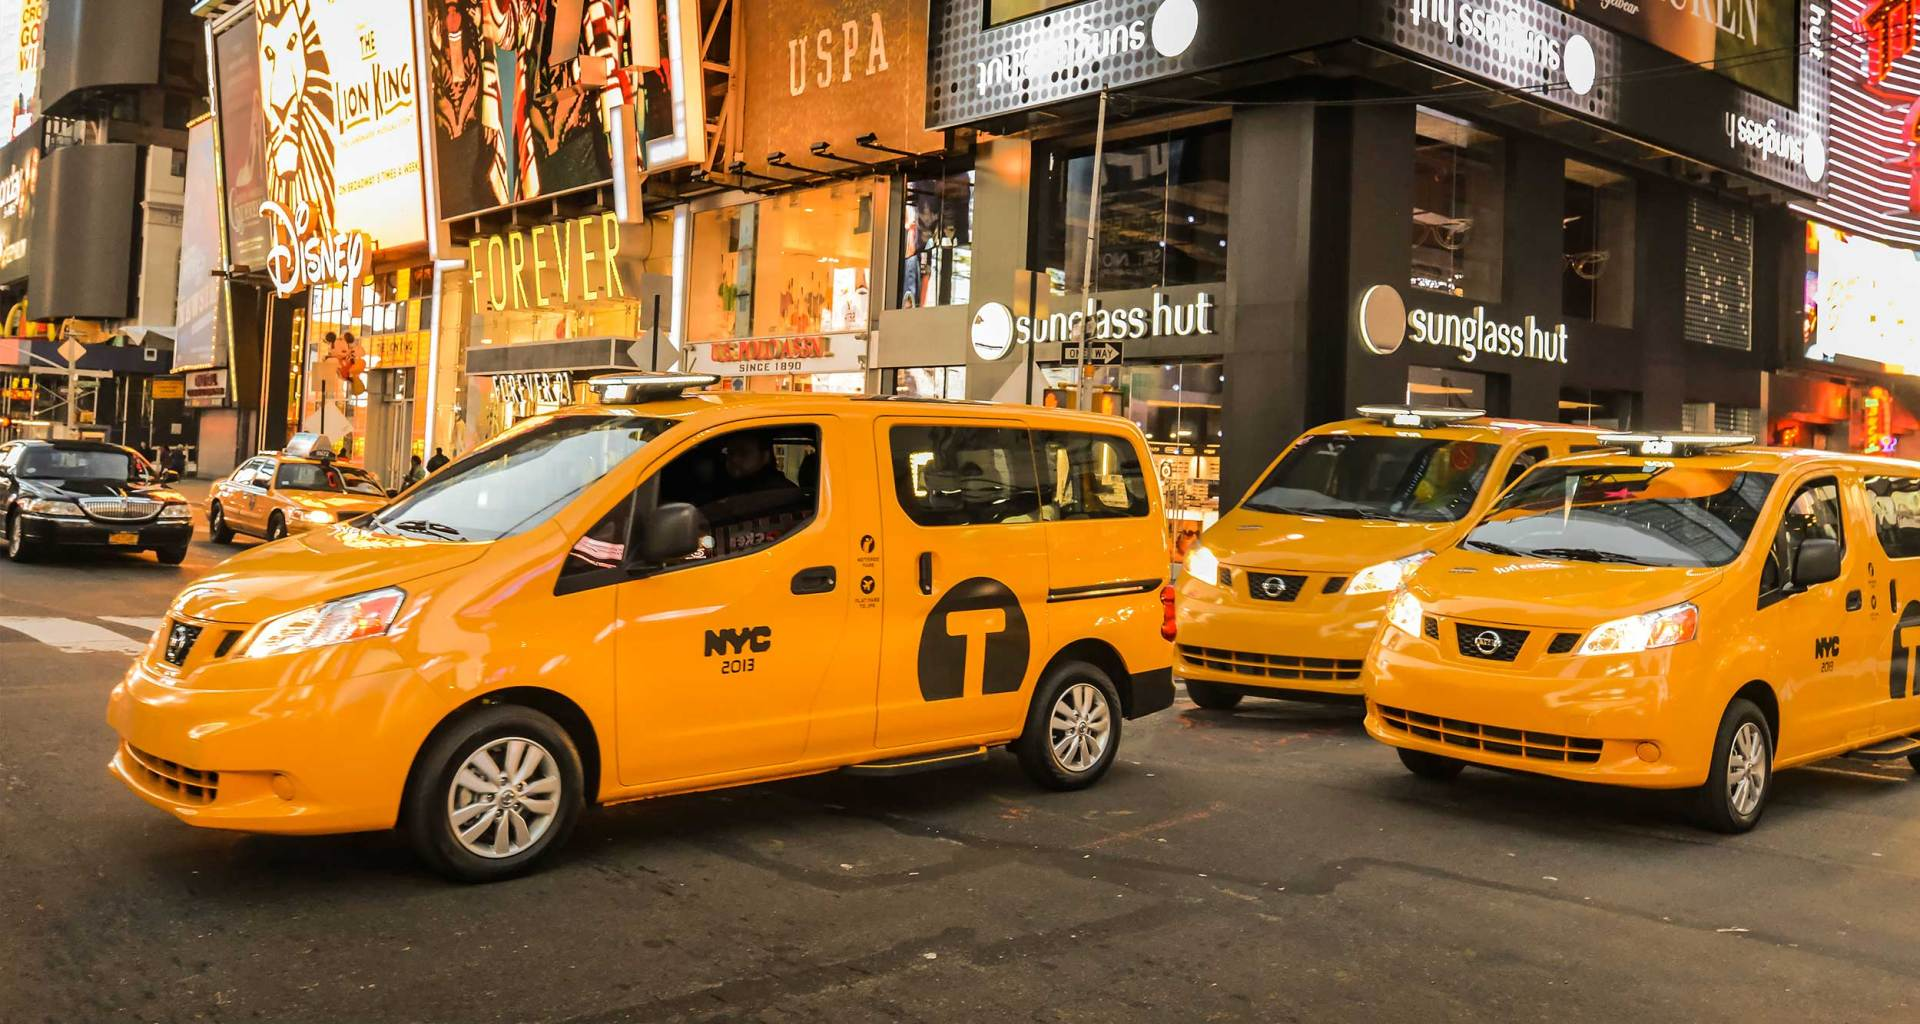 Wheelchair taxi vans on a street in New York City.